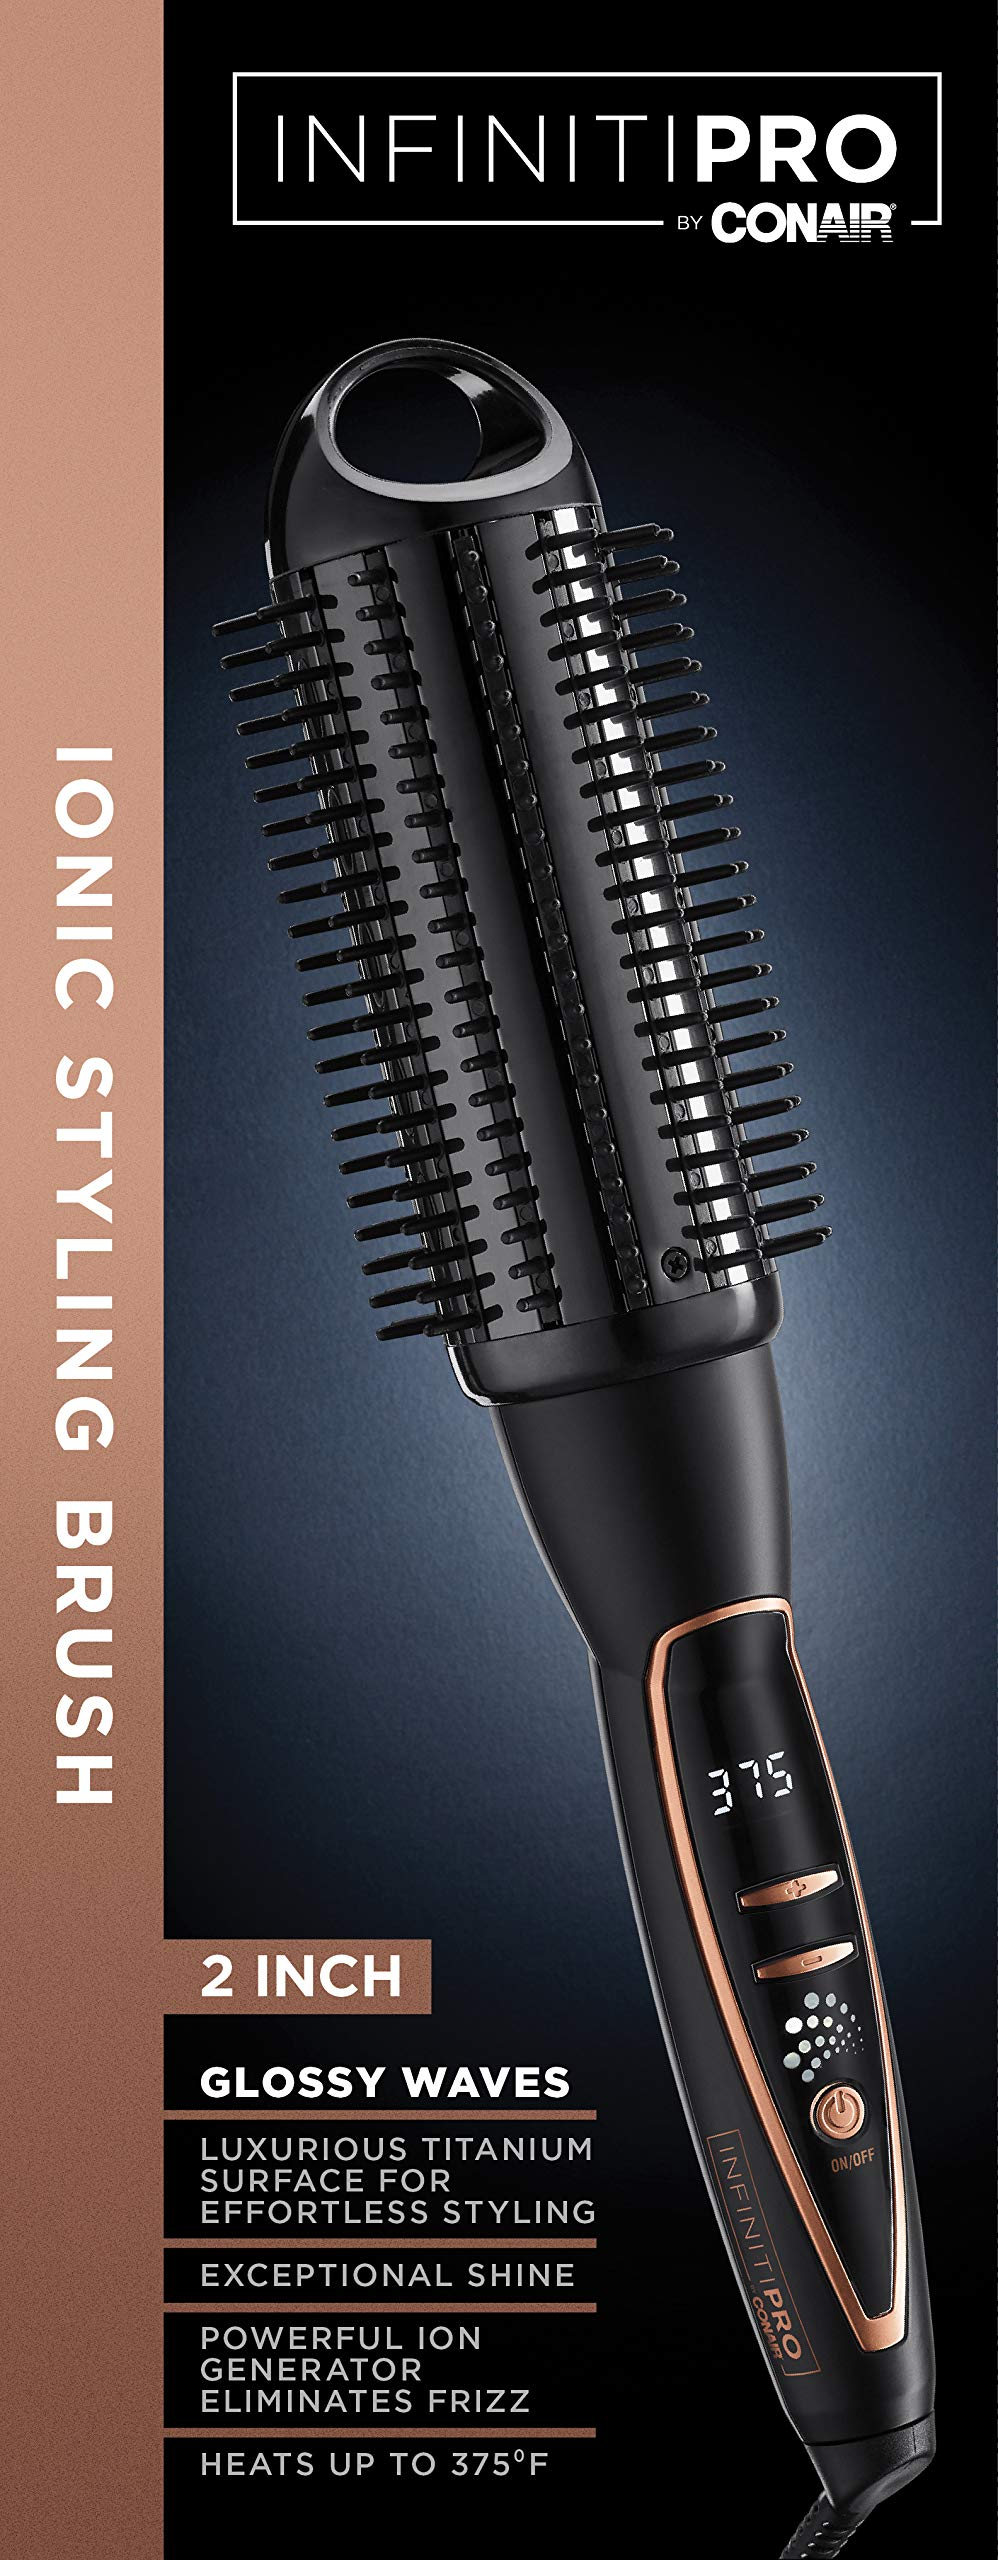 INFINITIPRO BY CONAIR Platinum Hot Curl Brush; 2-inch by Conair (Image #5)